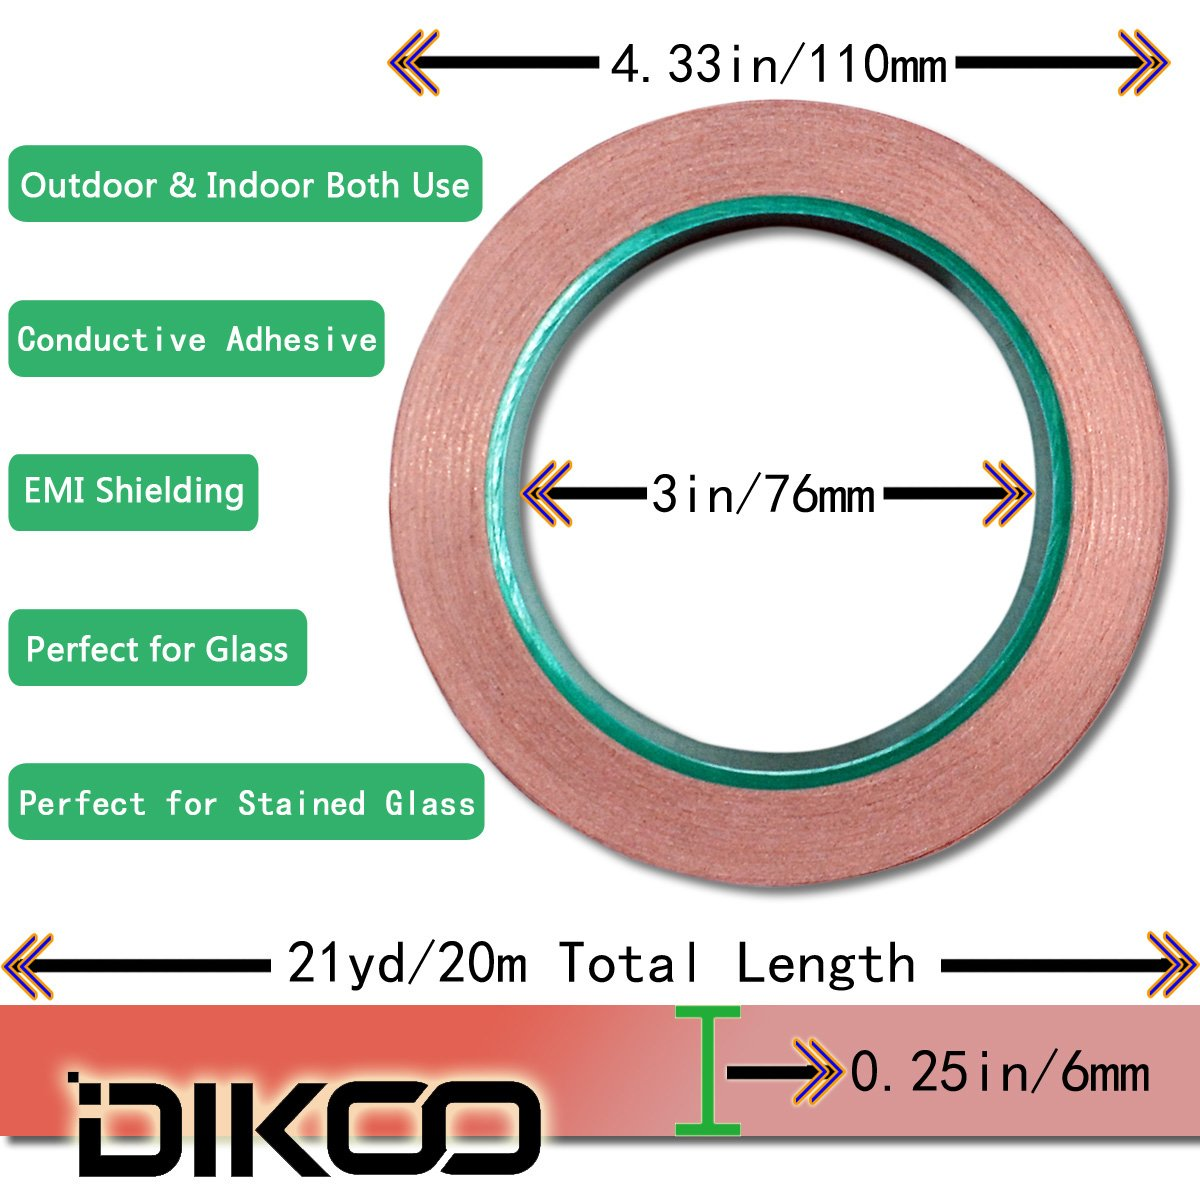 Copper Foil Tape,4Pcs DIKOO Double-Sided Conductive Adhesive (1/4inch X 21.8yards) for EMI Shielding,Slug Repellent,Electrical Repairs,Stained Glass,Art Work,Soldering,Grounding Paper Circuits,Crafts by DIKOO (Image #5)